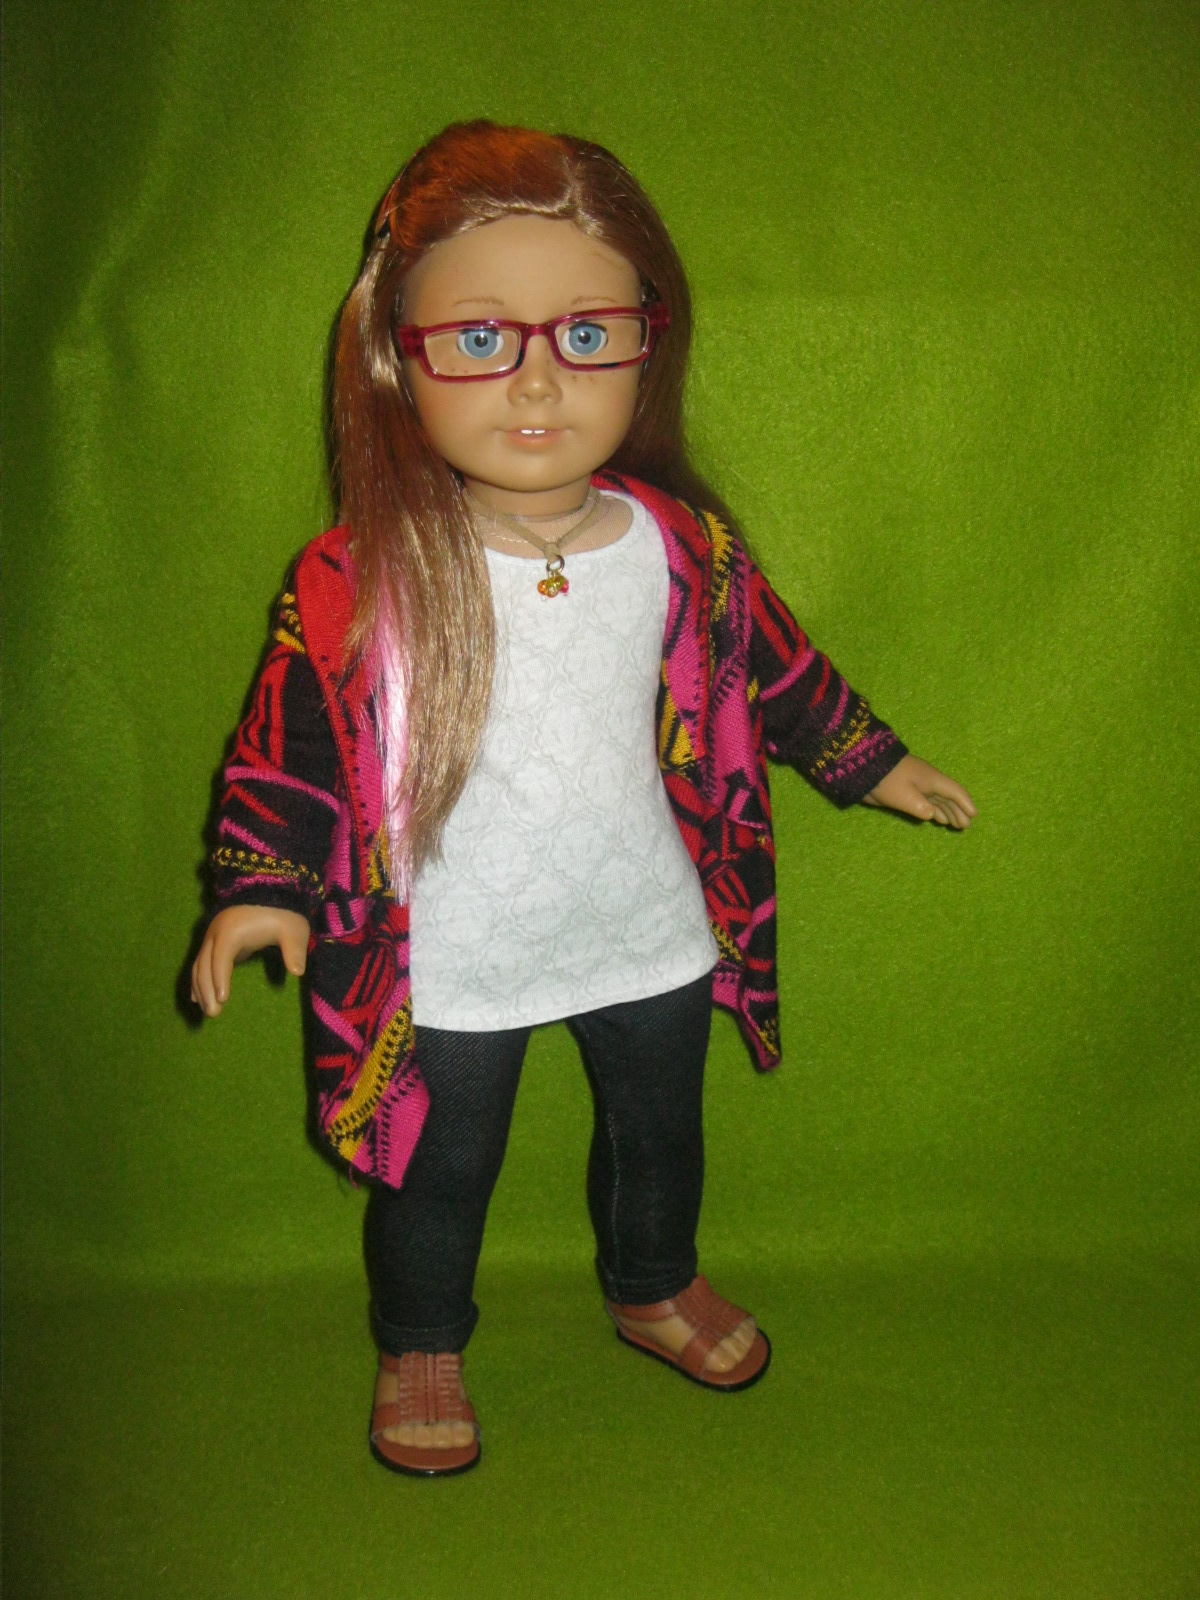 American Girl Doll Saige 2013 GOTY Sweater Outfit Sleeveless TOP only